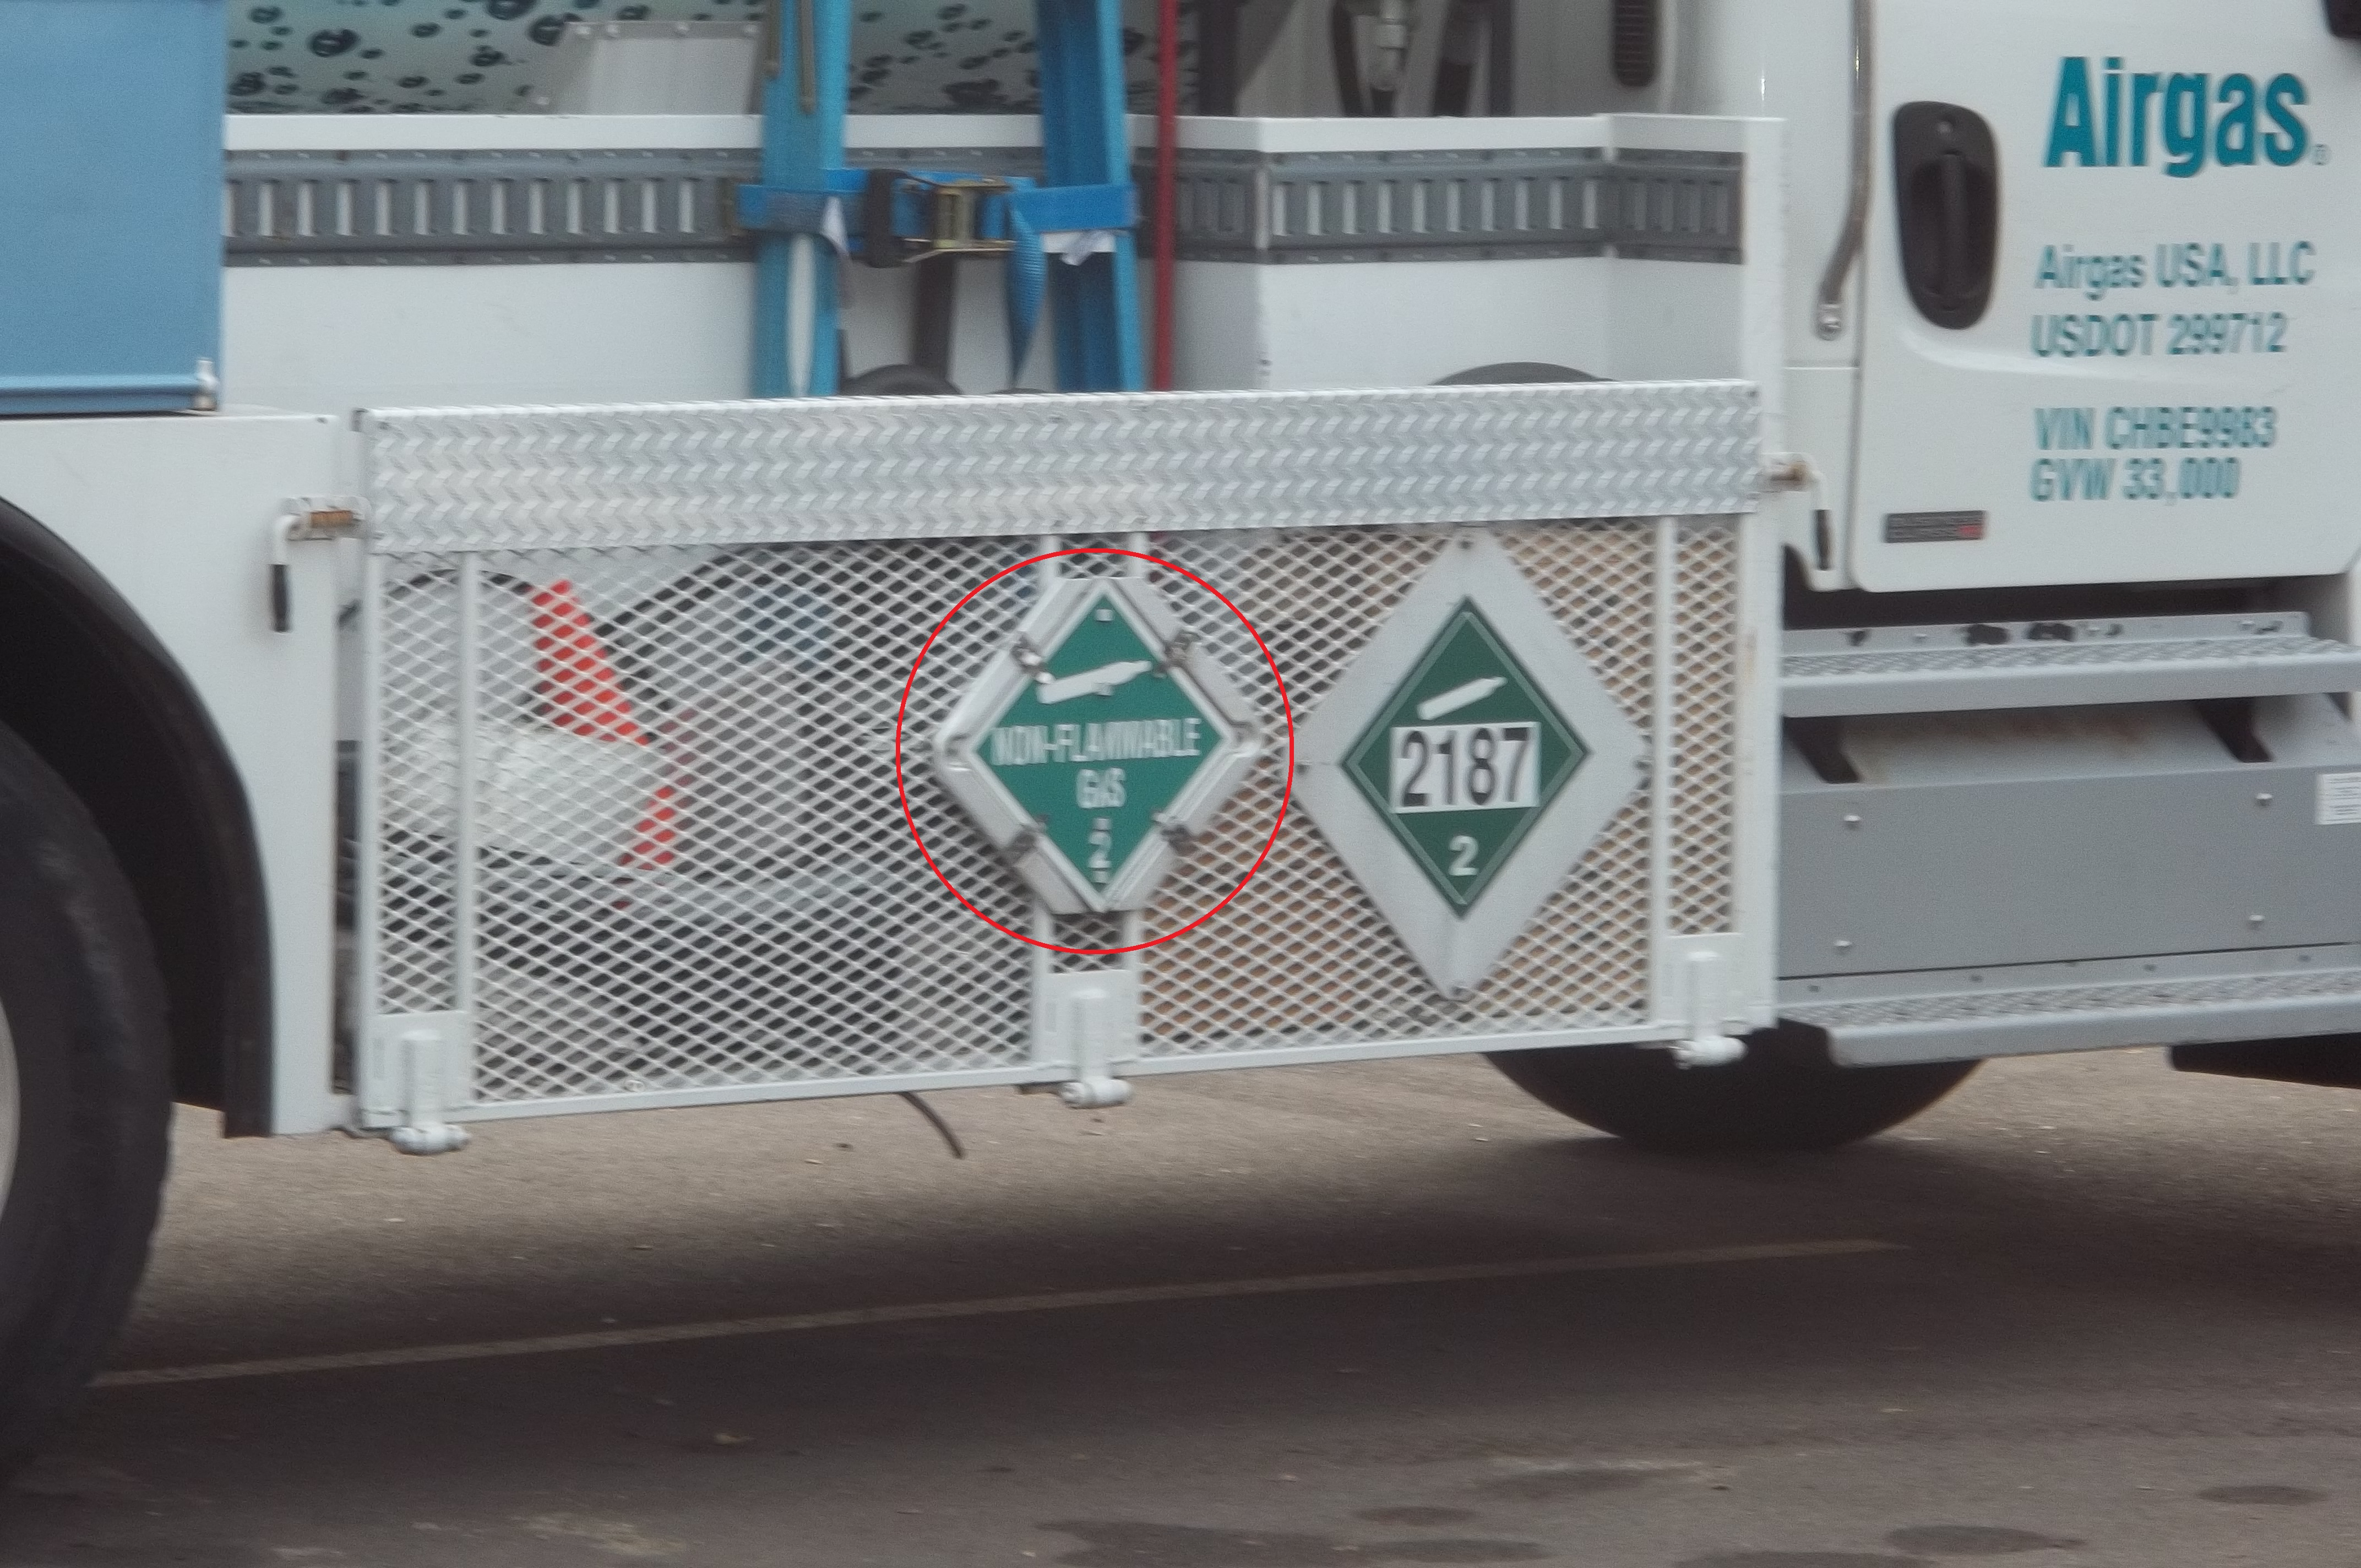 What S On That Truck The Identification Of Hazardous Materials In